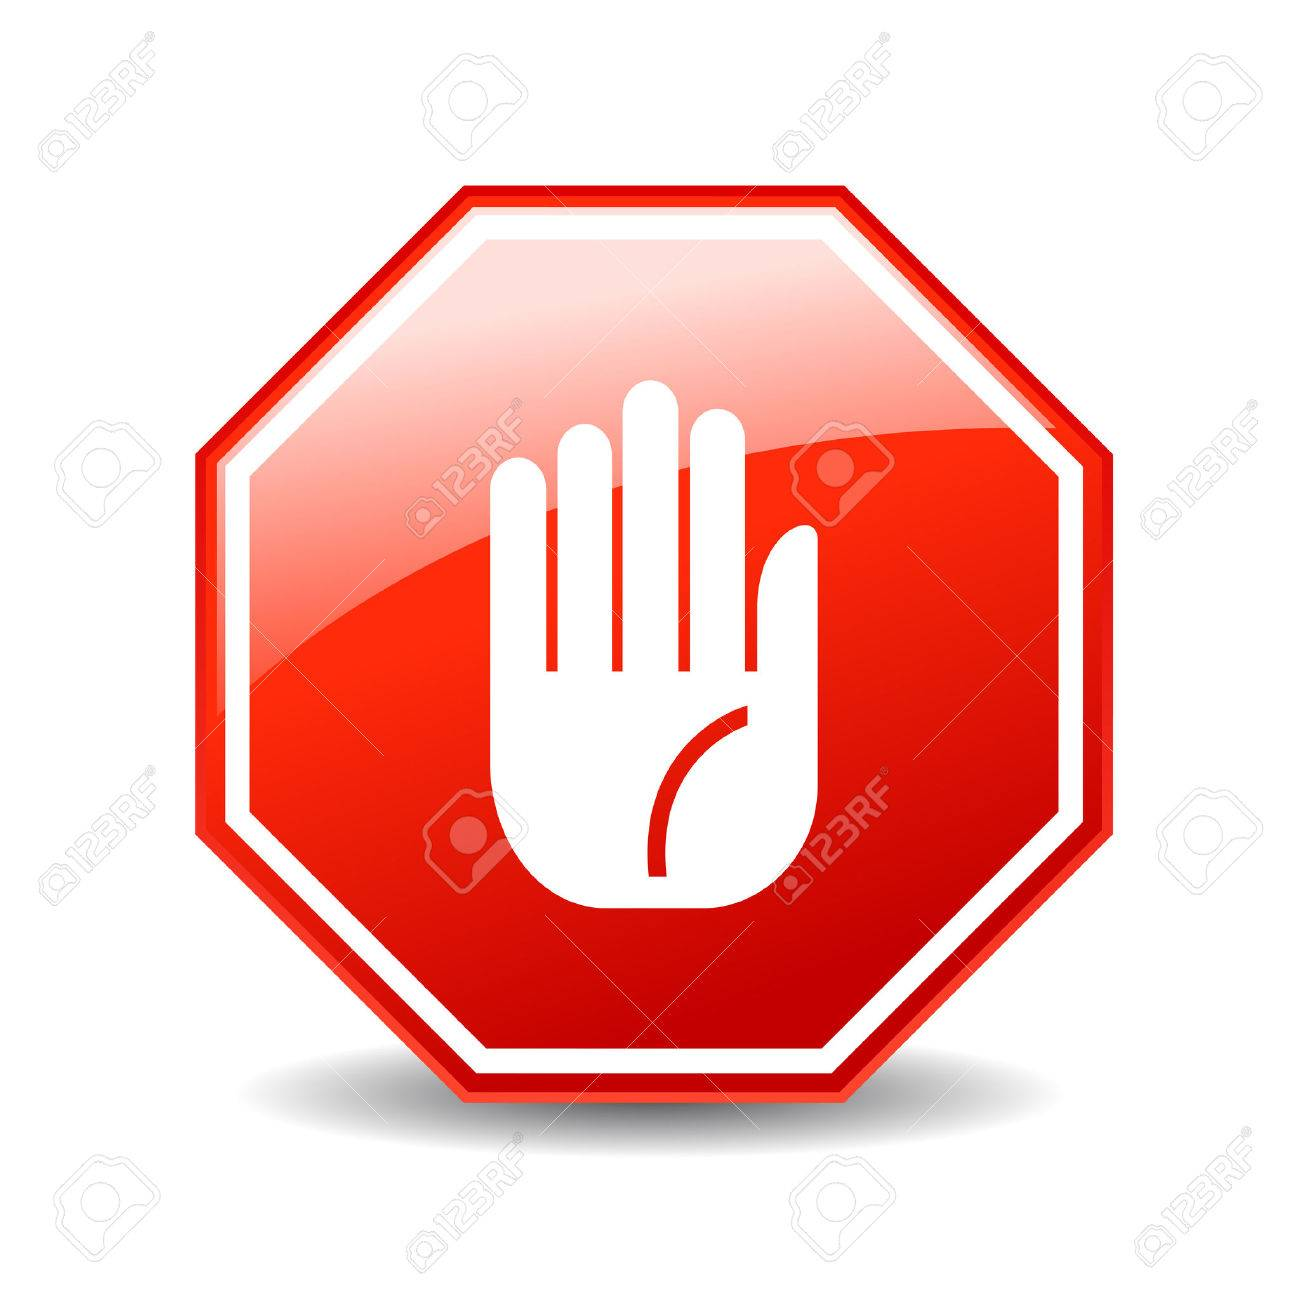 31586 Stop Hand Stock Vector Illustration And Royalty Free Stop